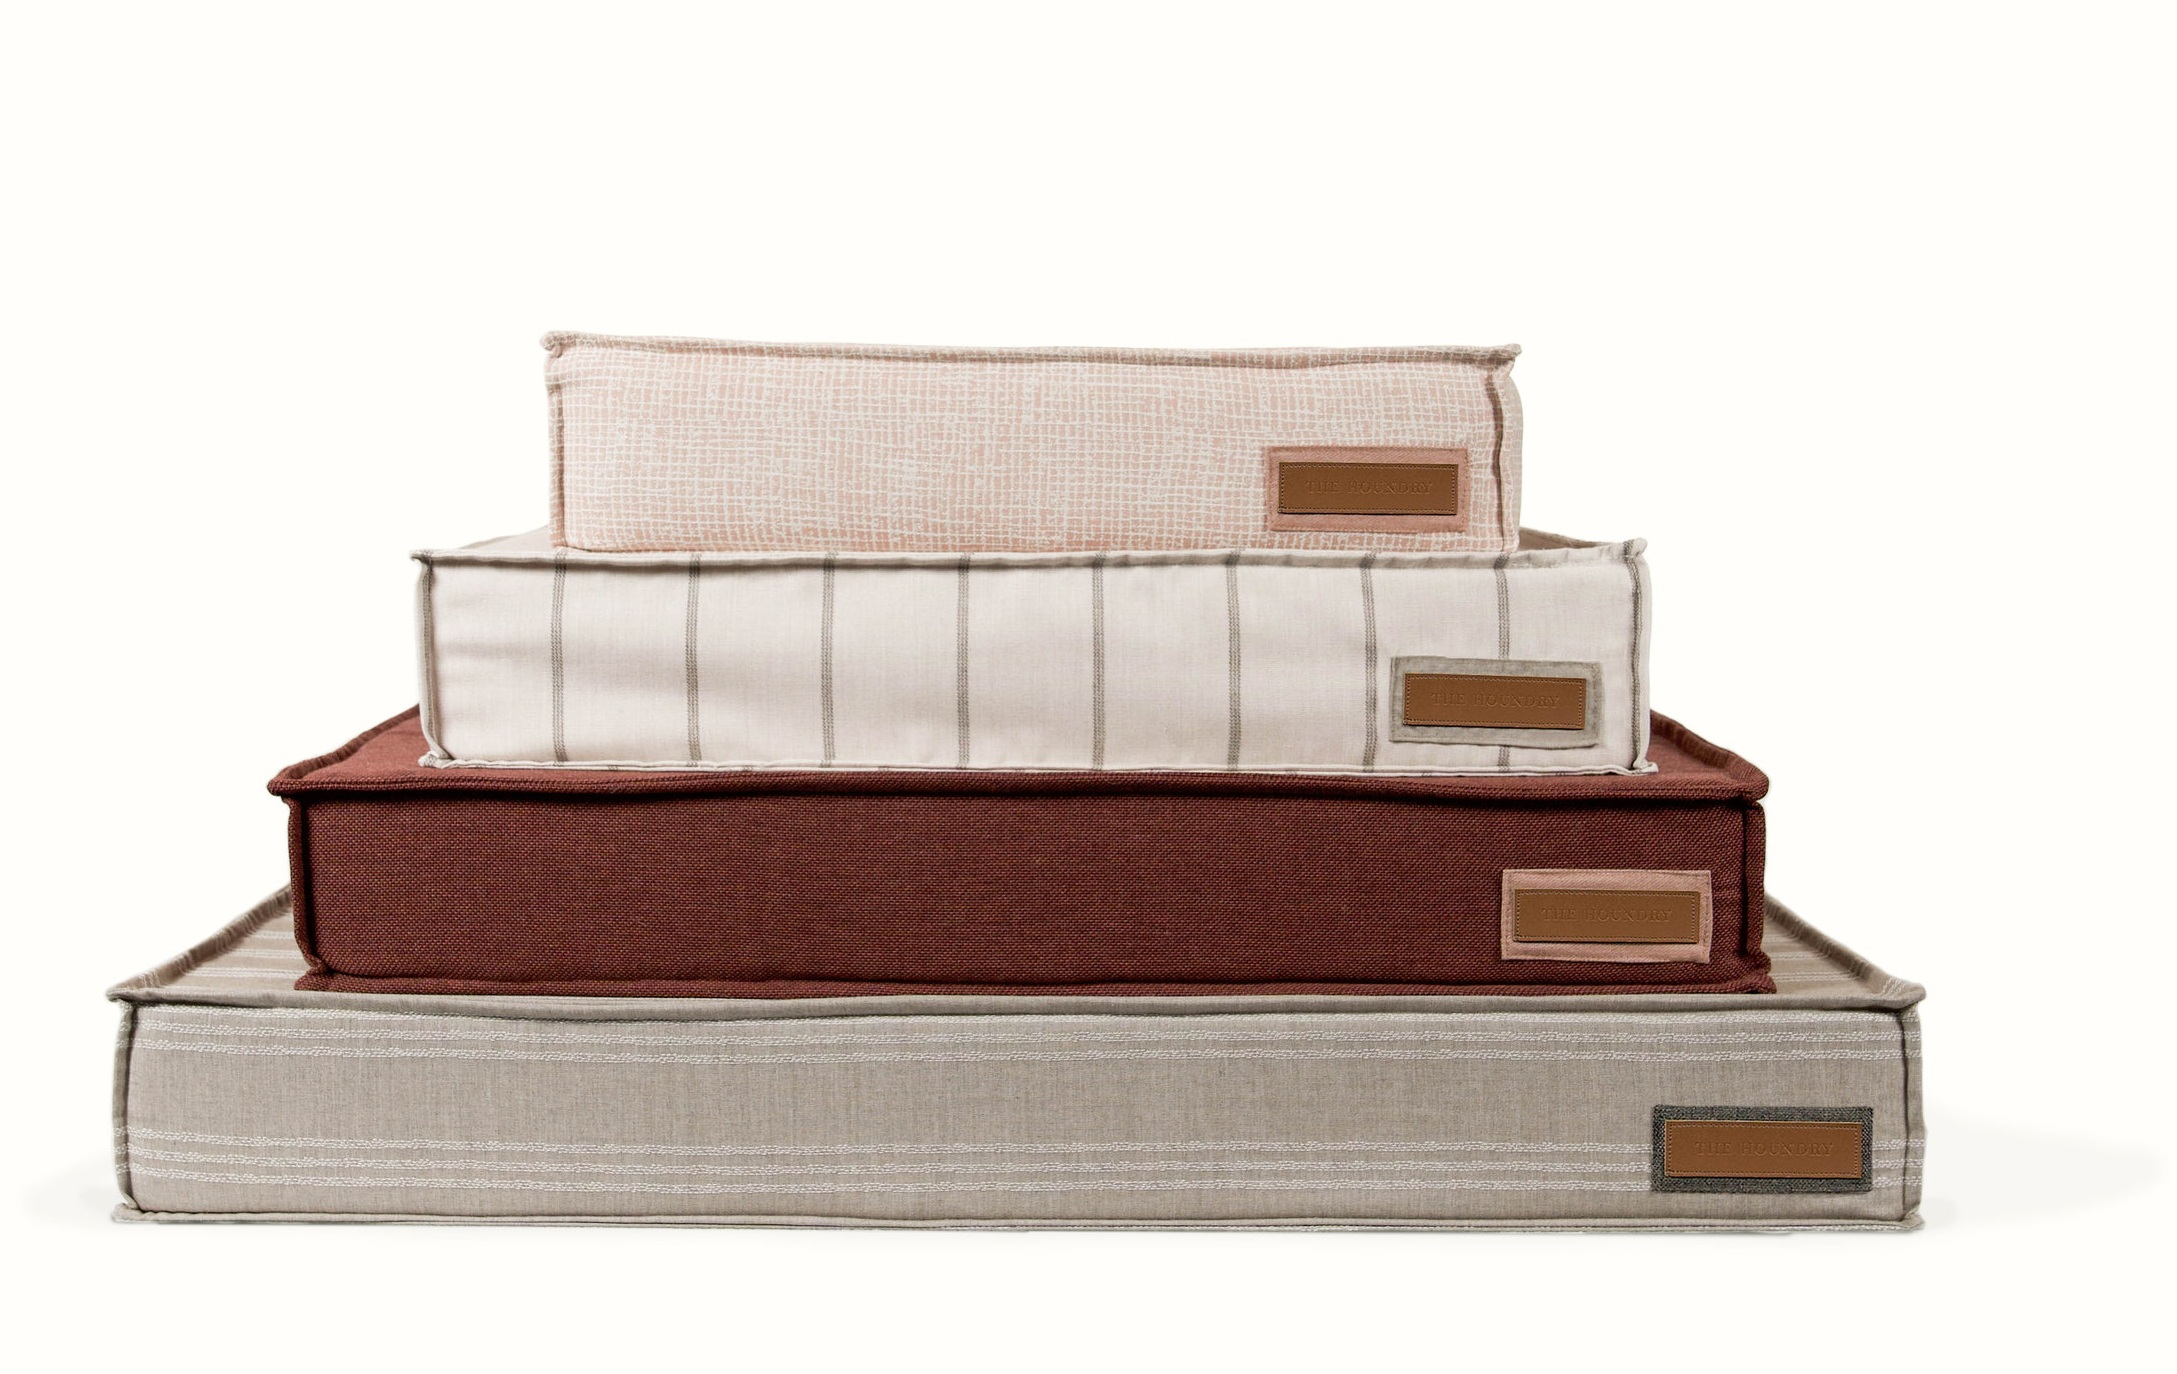 """Lounger Bed Sizes - SMALL BED: 22"""" x 22"""" x 6"""" thickFor dogs smaller than 30 lbsMEDIUM BED: 28"""" x 28"""" x 6"""" thickFor dogs 30-60 lbsLARGE BED: 42"""" x 31"""" x 6"""" thickFor dogs 60-90 lbsX-LARGE BED: 48"""" x 36"""" x 6"""" thickFor dogs larger than 90 lbs"""